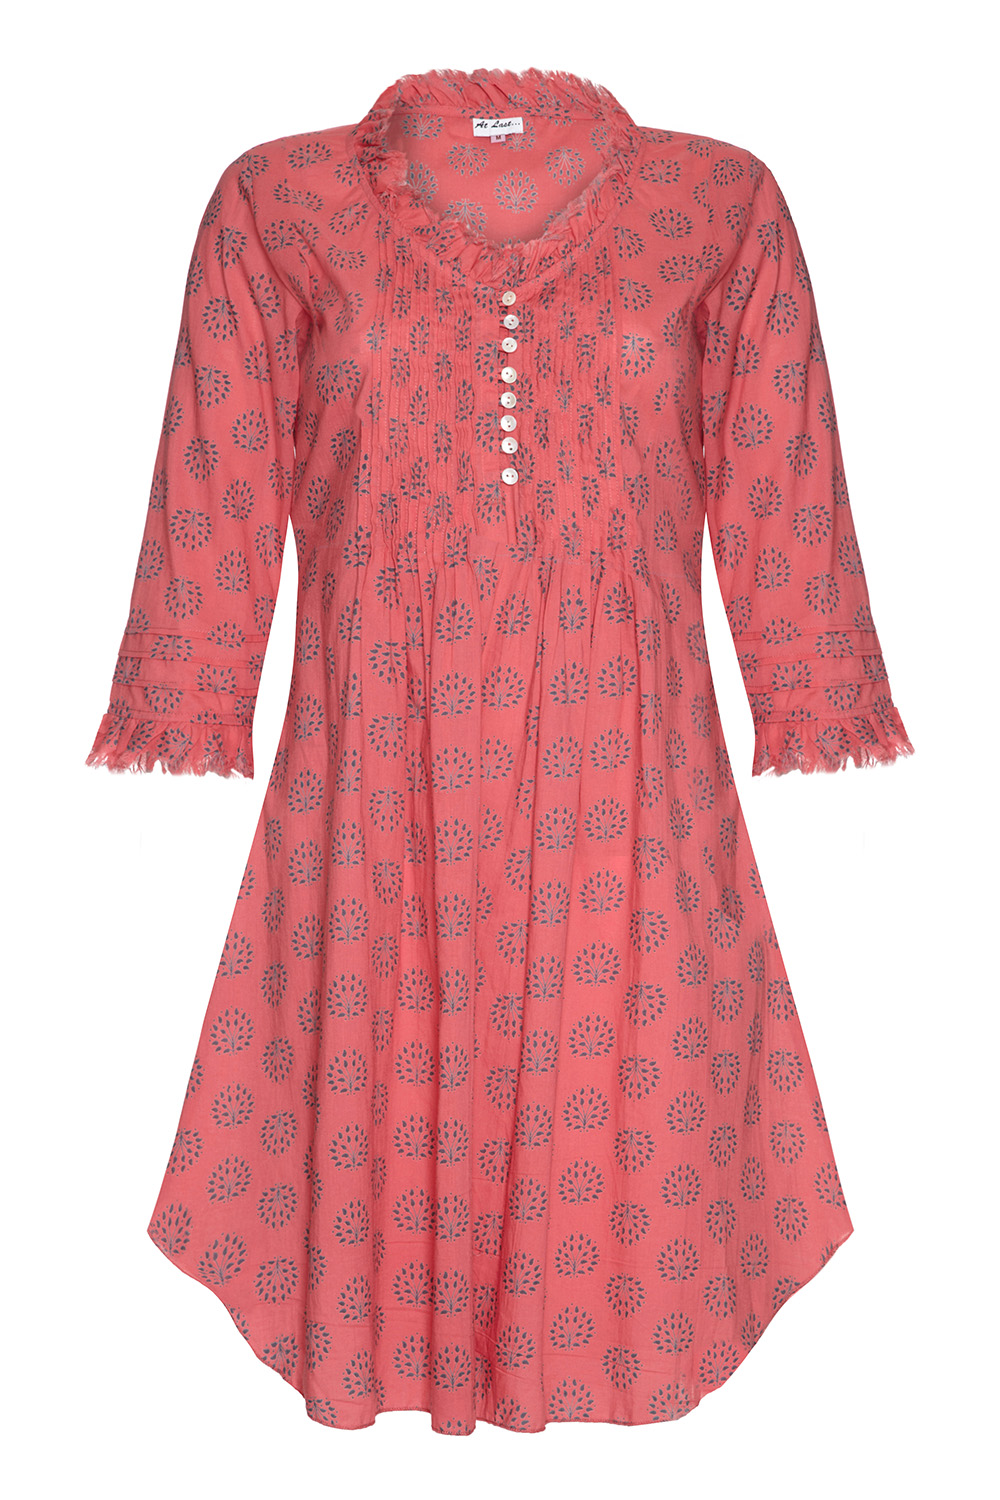 At Last Annabel - Coral Print